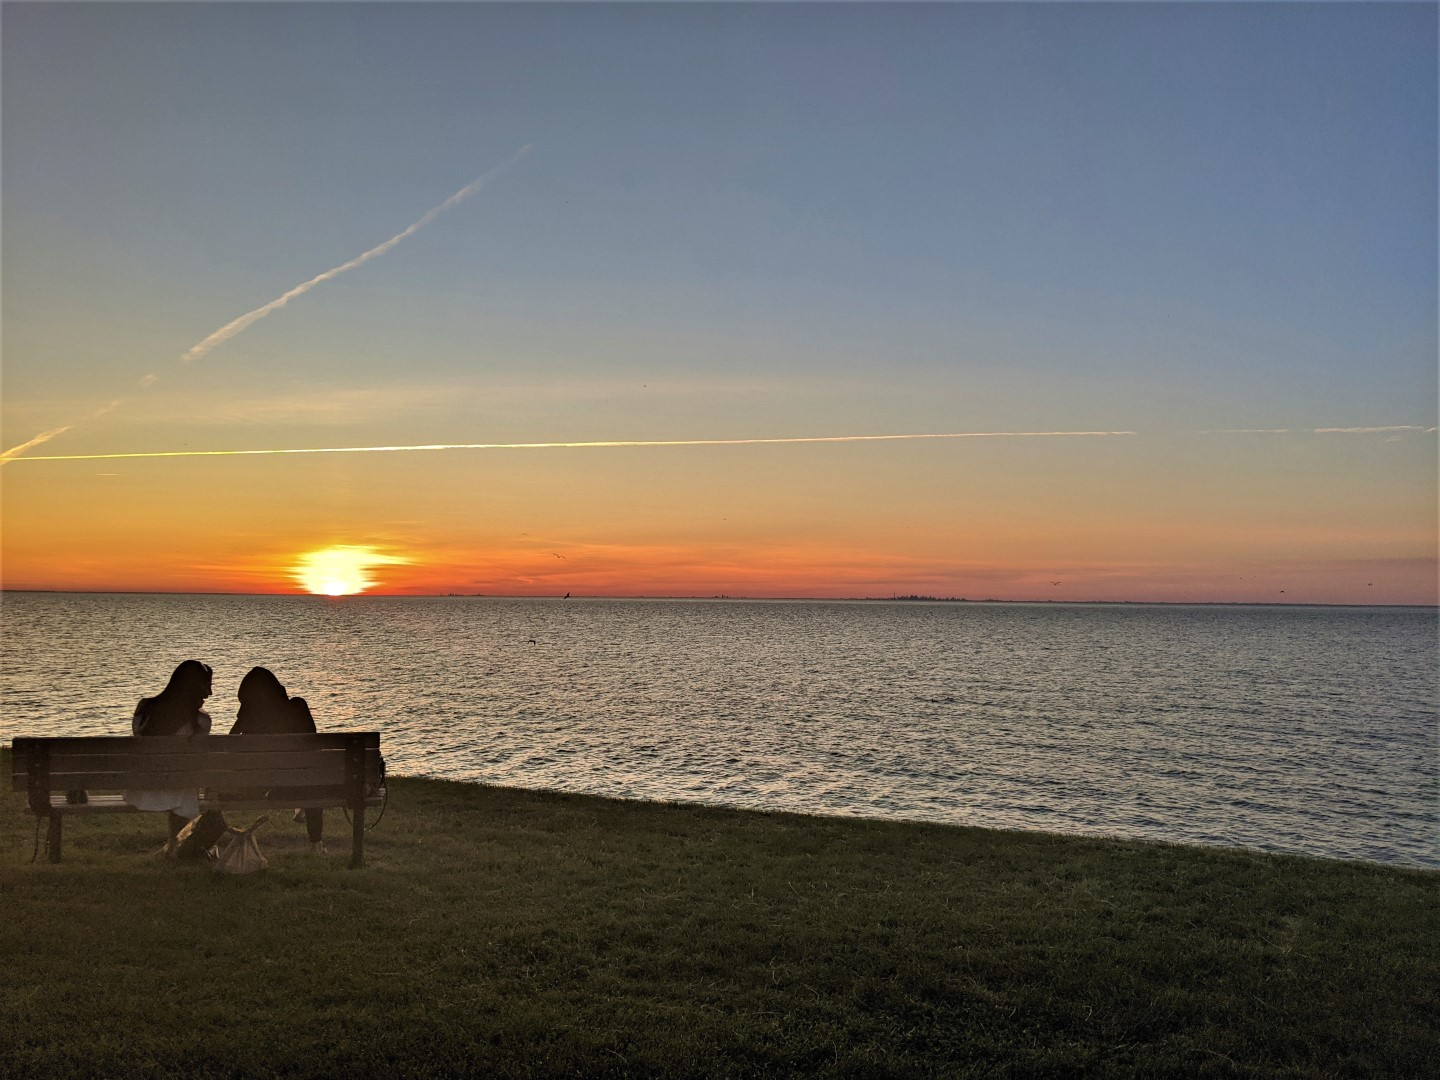 Two people shadows on bench watching sunset on the water